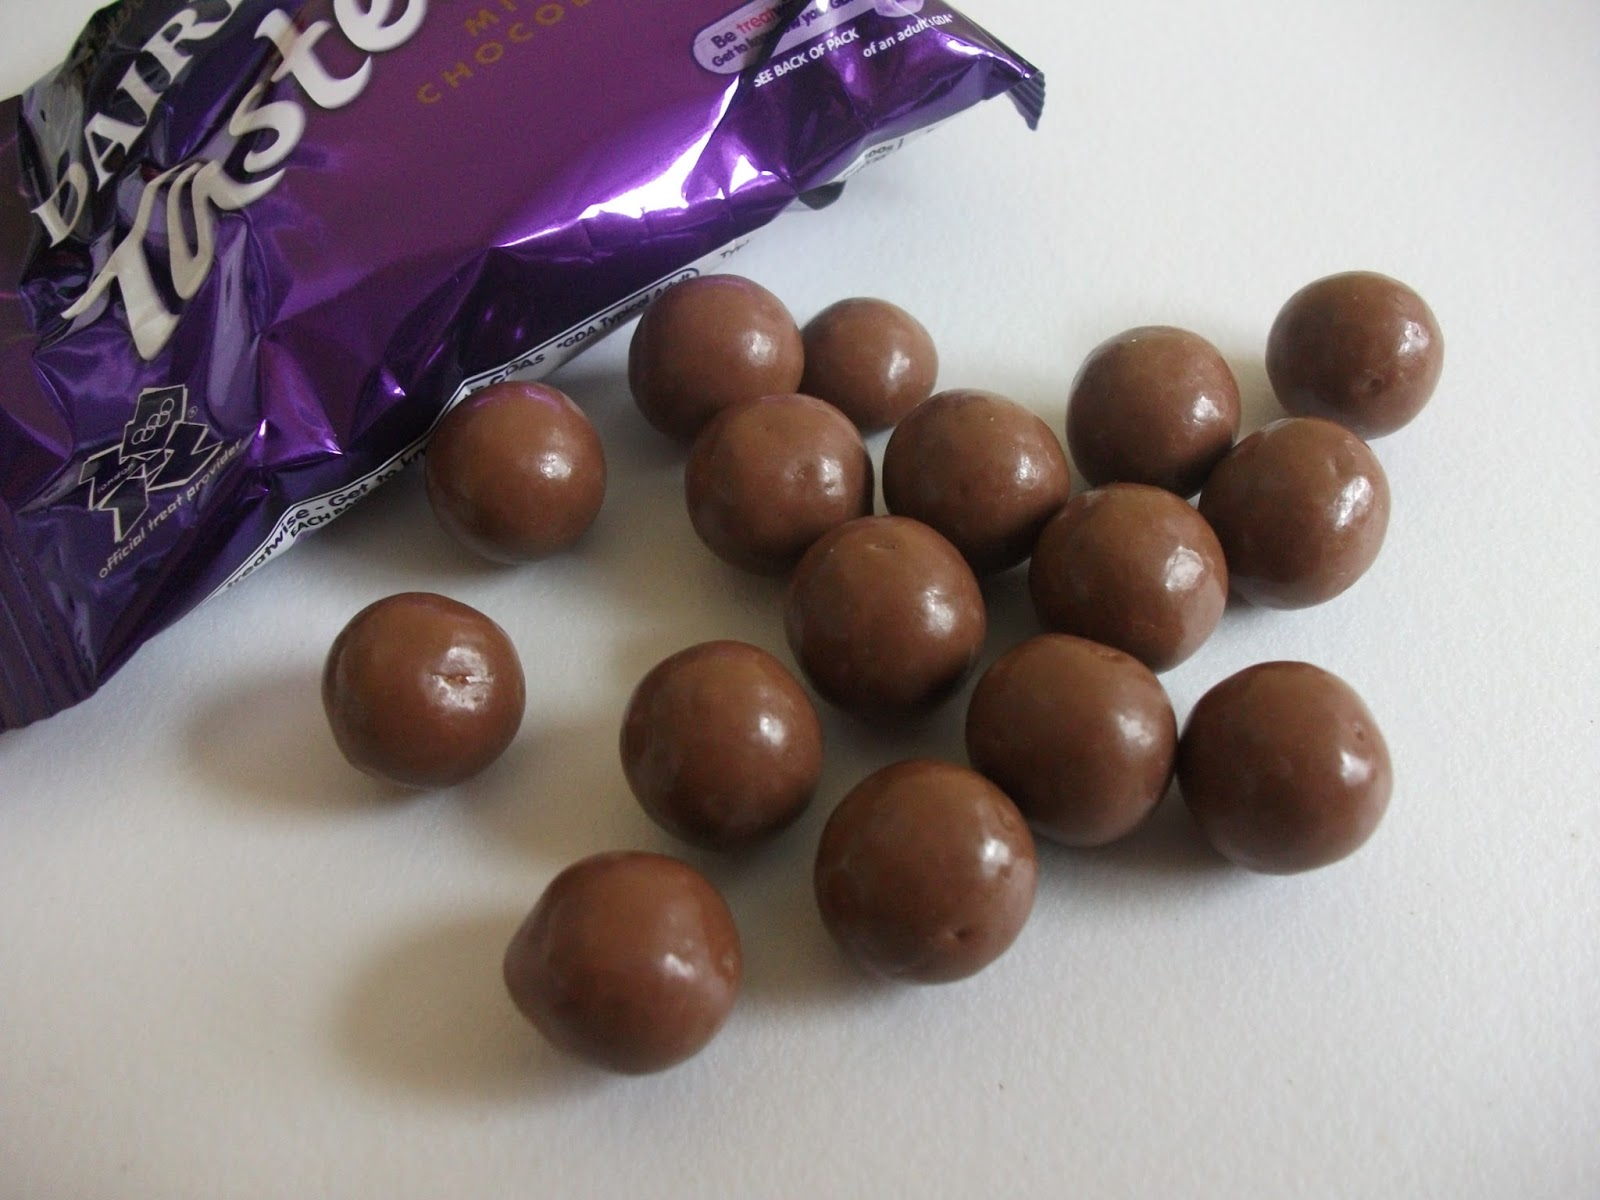 Calories In Chocolate Pebbles